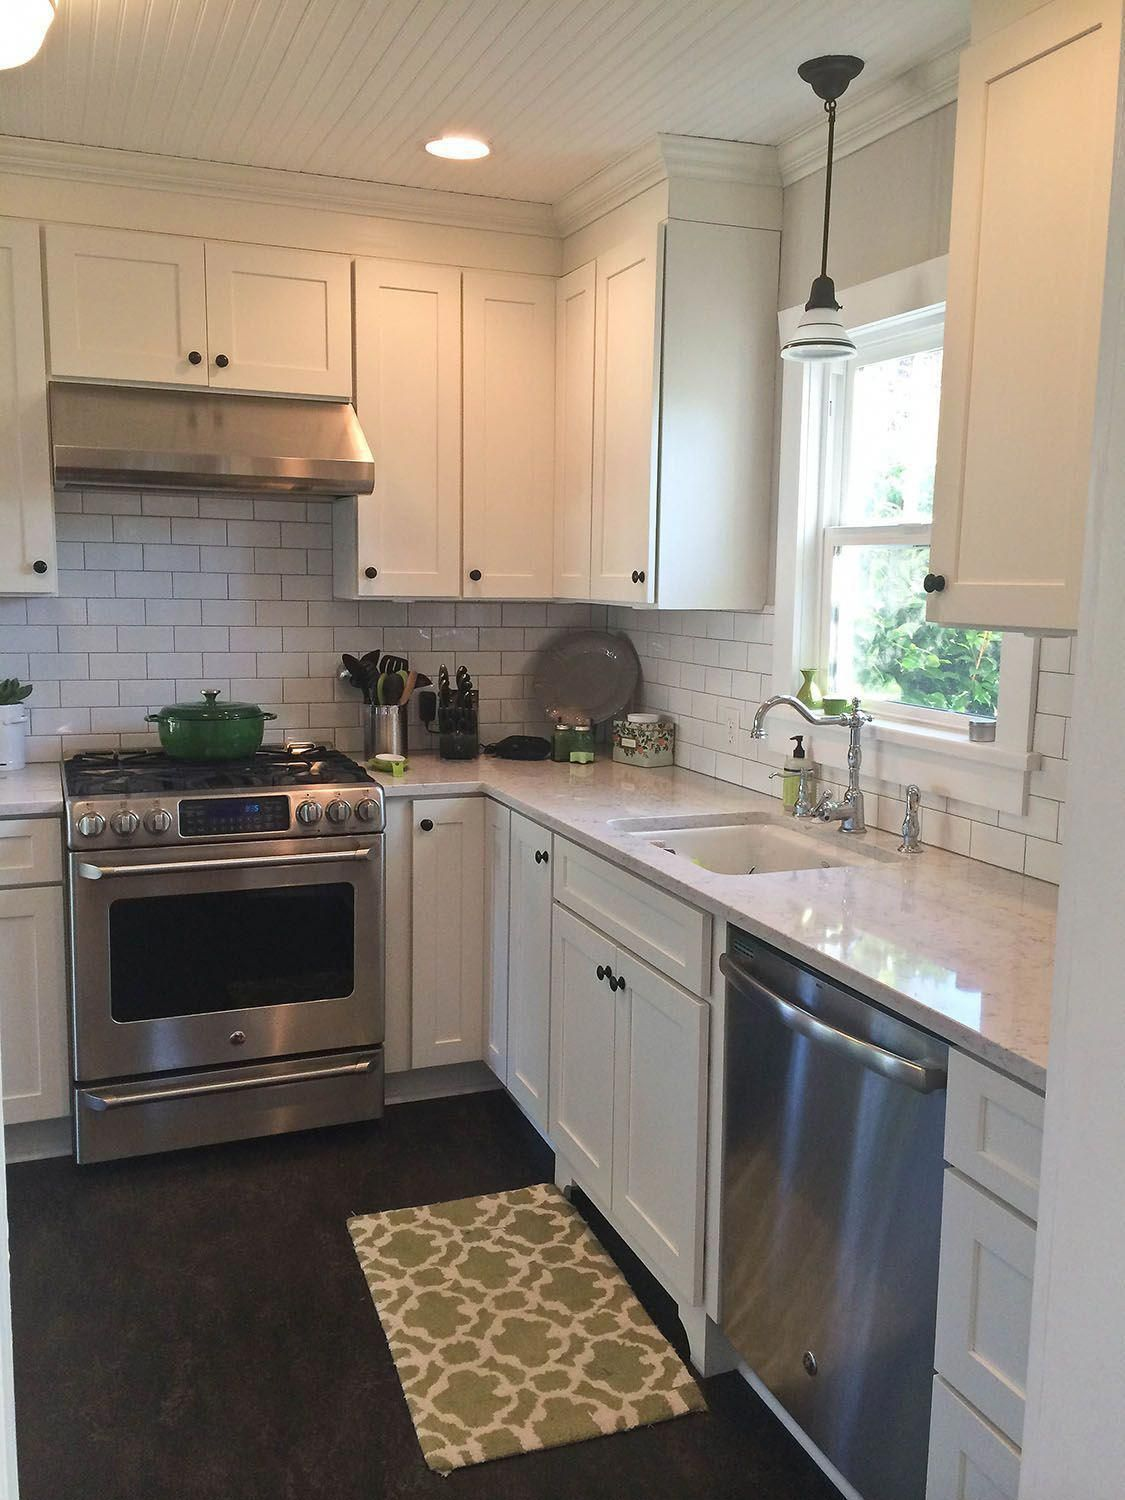 Kitchen Flooring Ideas It S A Smart Idea To Pick Your Flooring At The Very Same Time As Your Cabin Kitchen Layout Kitchen Designs Layout New Kitchen Cabinets